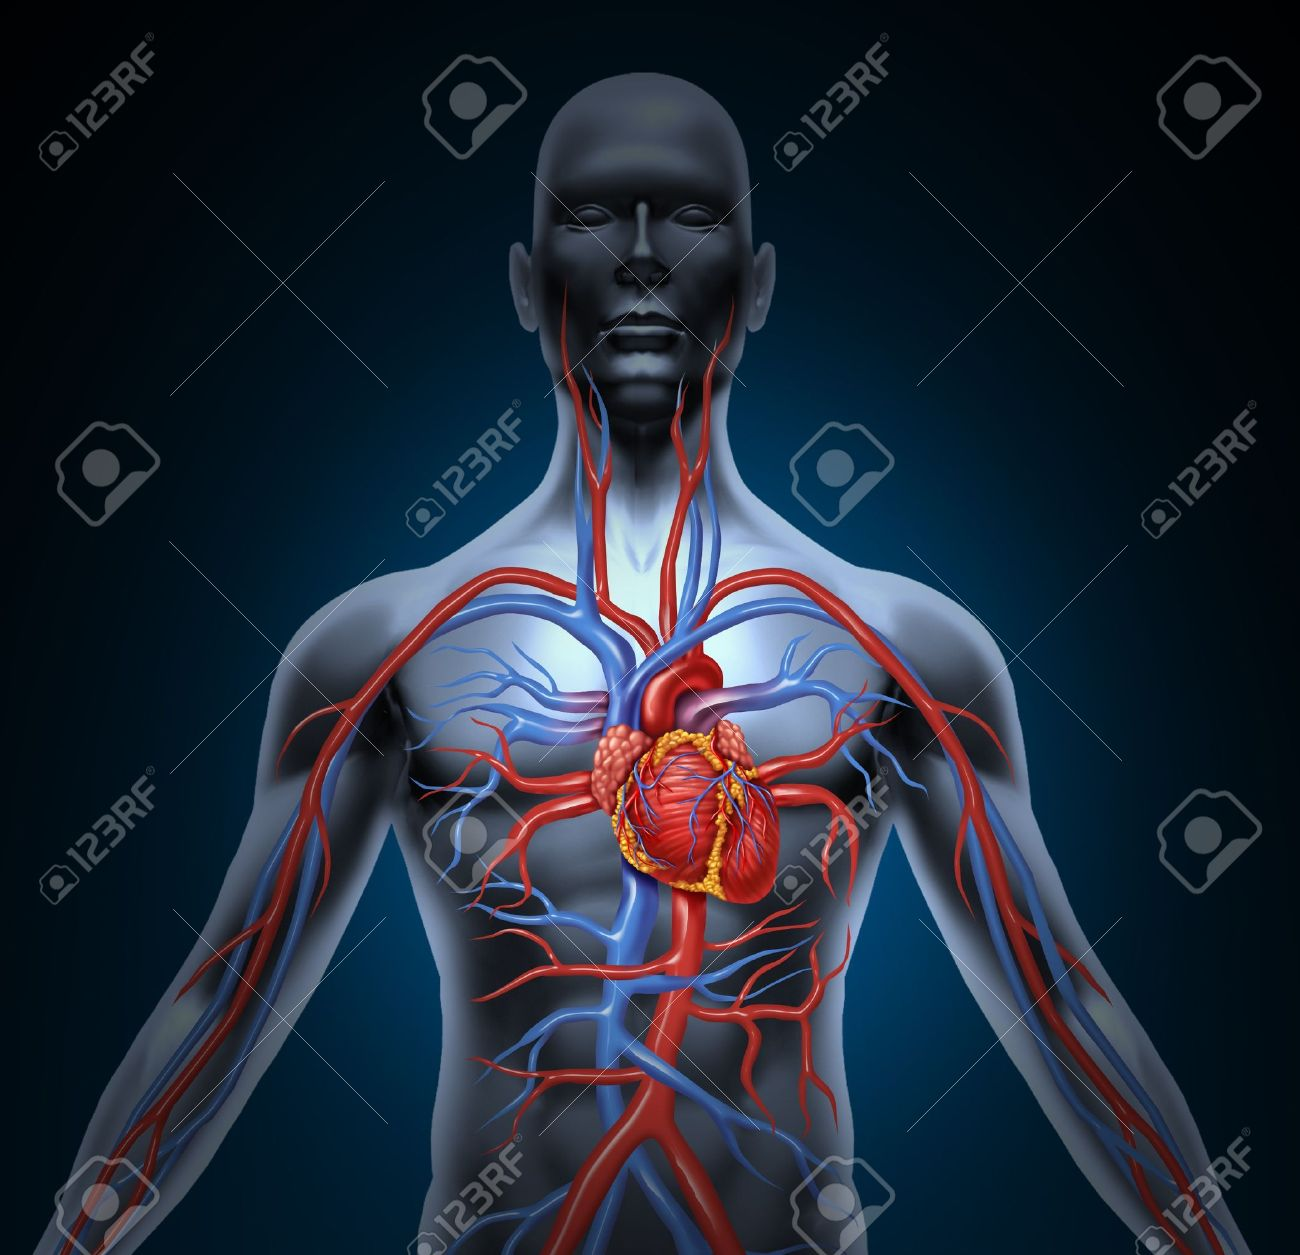 Human Circulation Cardiovascular System With Heart Anatomy From